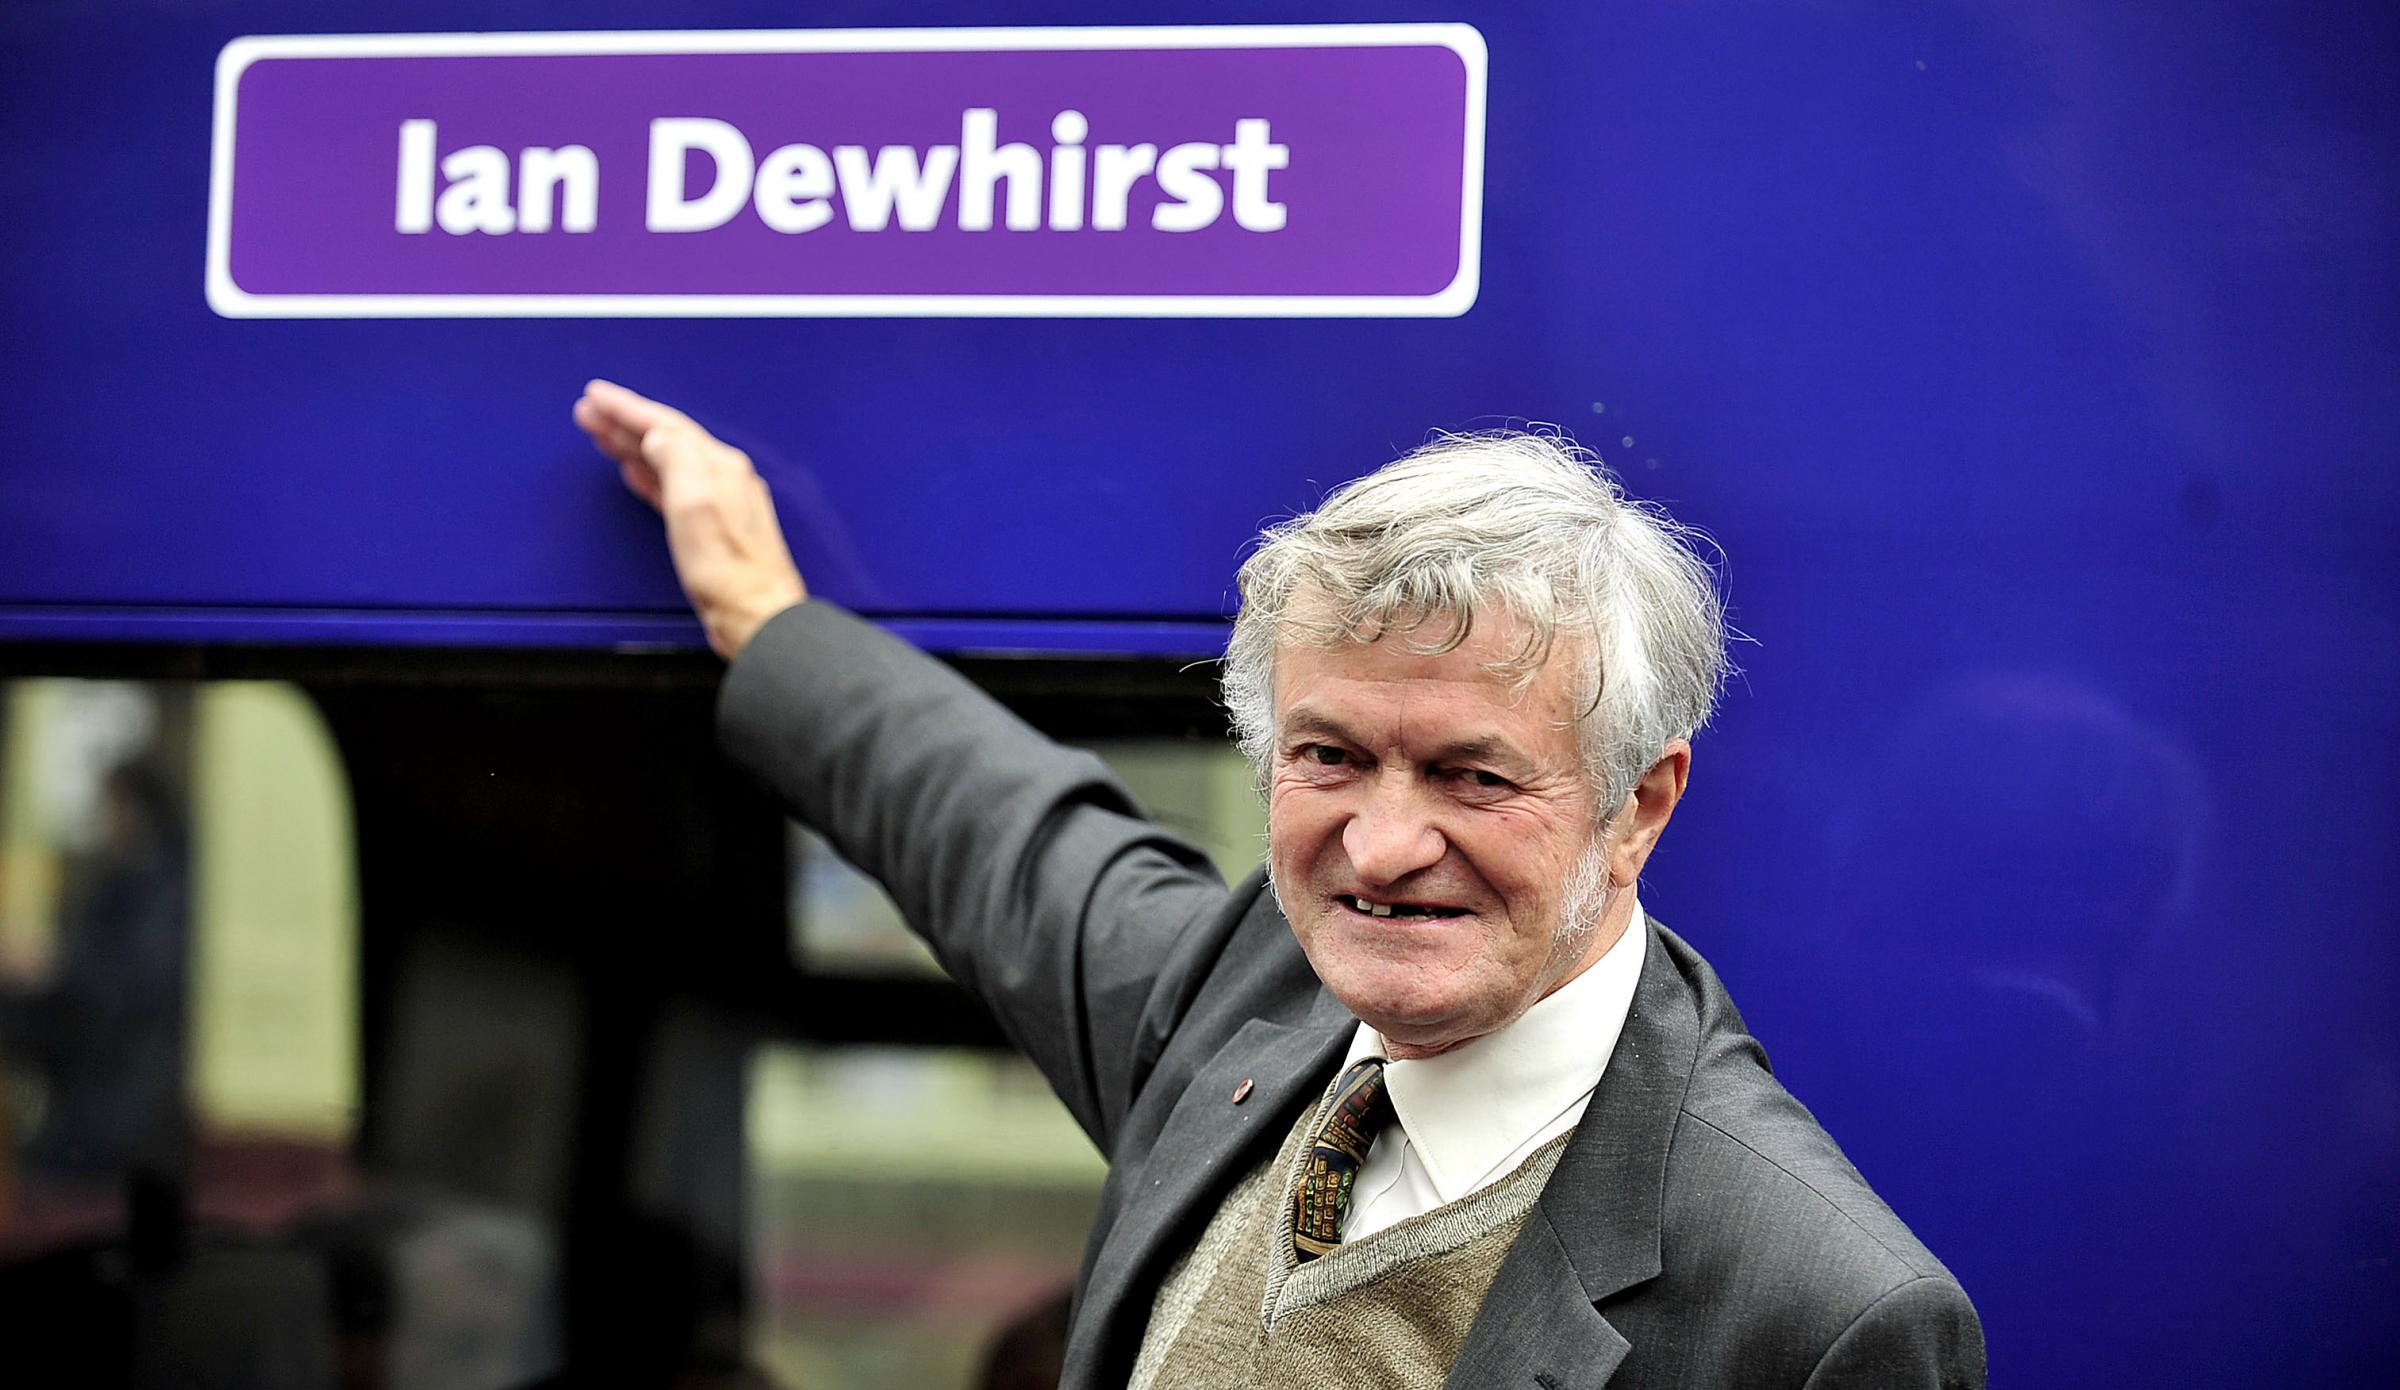 Ian Dewhirst, Keighley historian